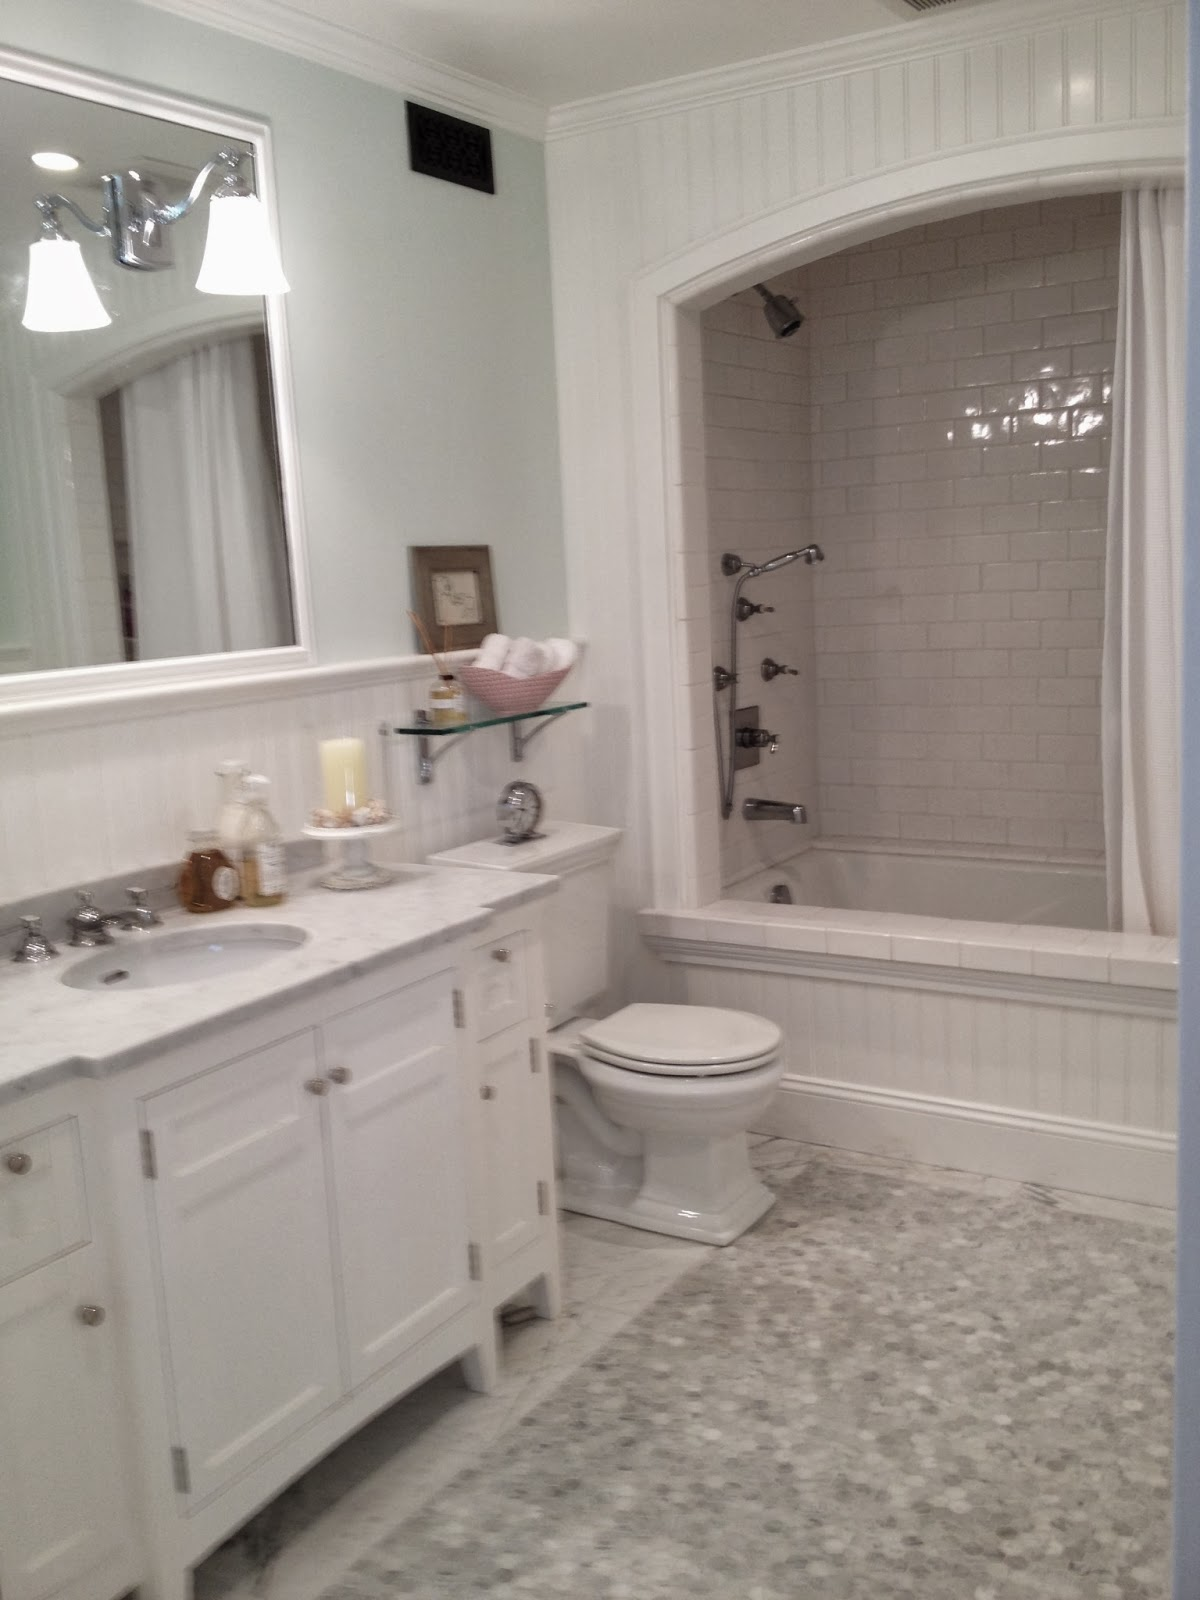 Bathroom Remodel Cost Orange County mortgage loans caroline gerardo eagle home : white bathroom remodel